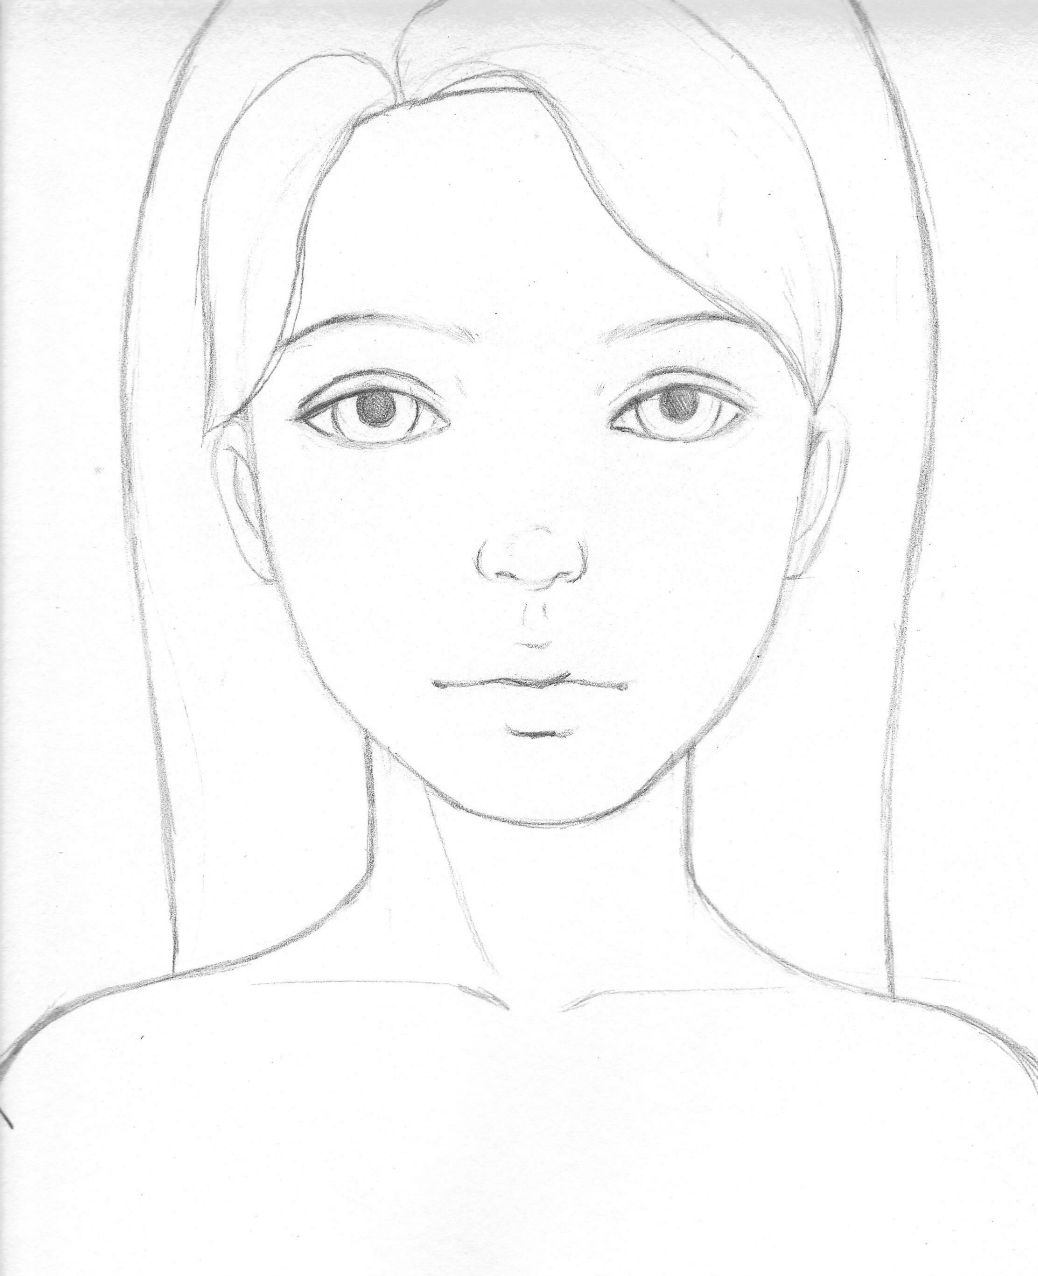 Human Eyes Drawing At Free For Personal Use Image Eye Diagram Download How To Draw A Pretty Face Week One